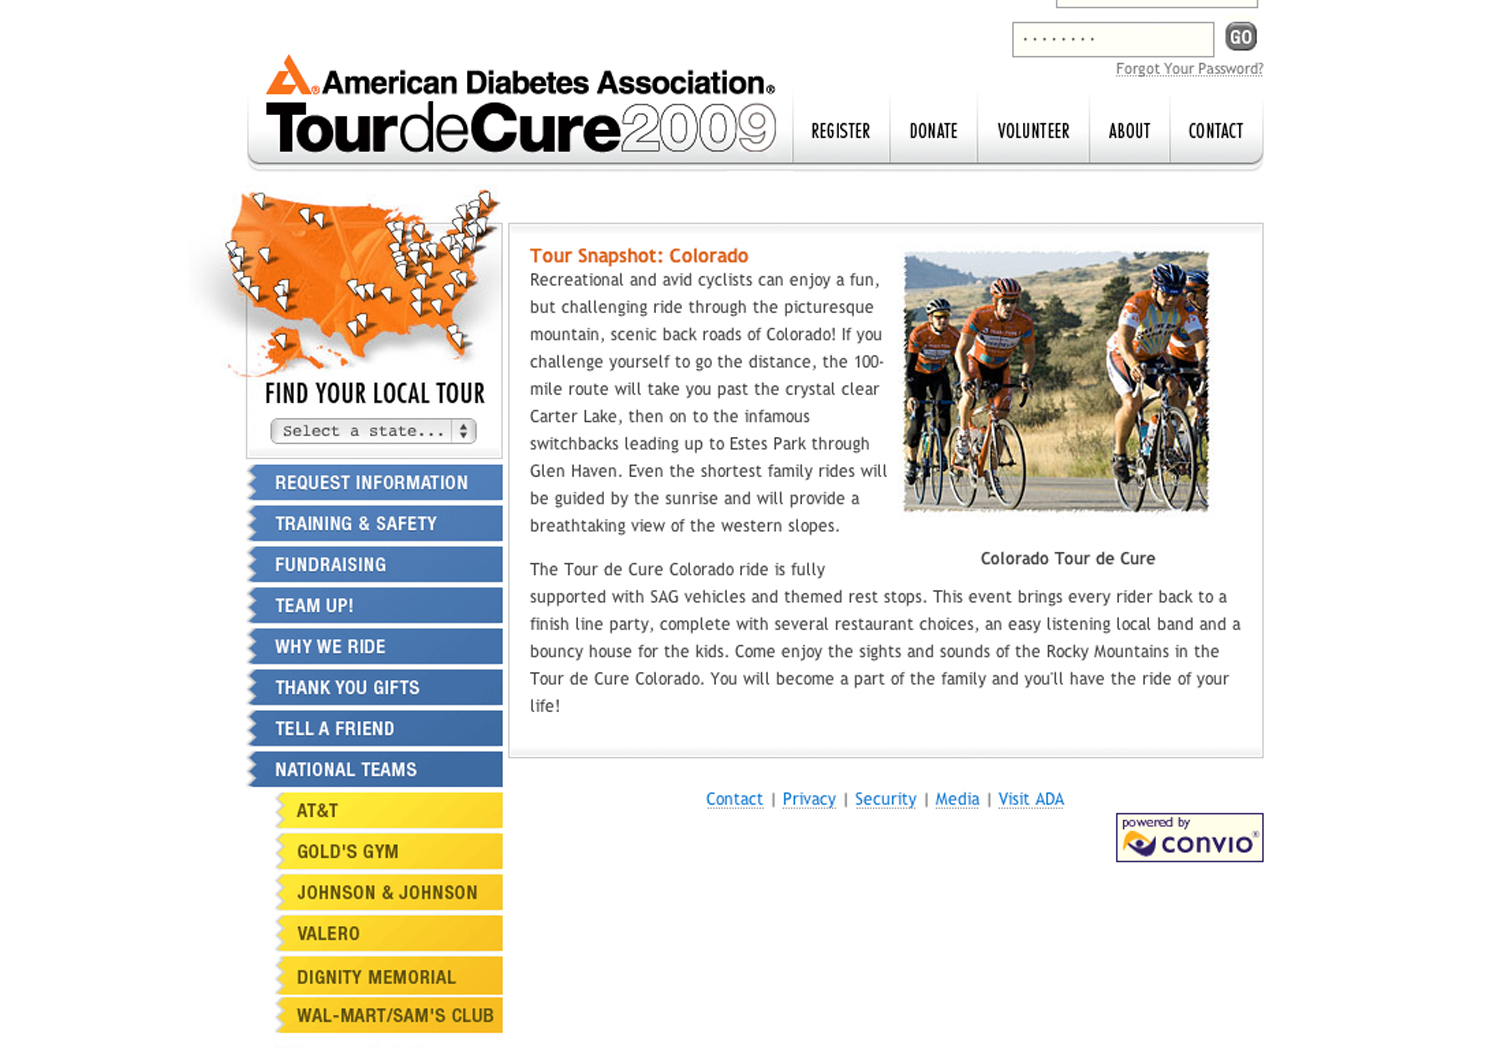 TourDeCureWebsite_squarespace.jpg